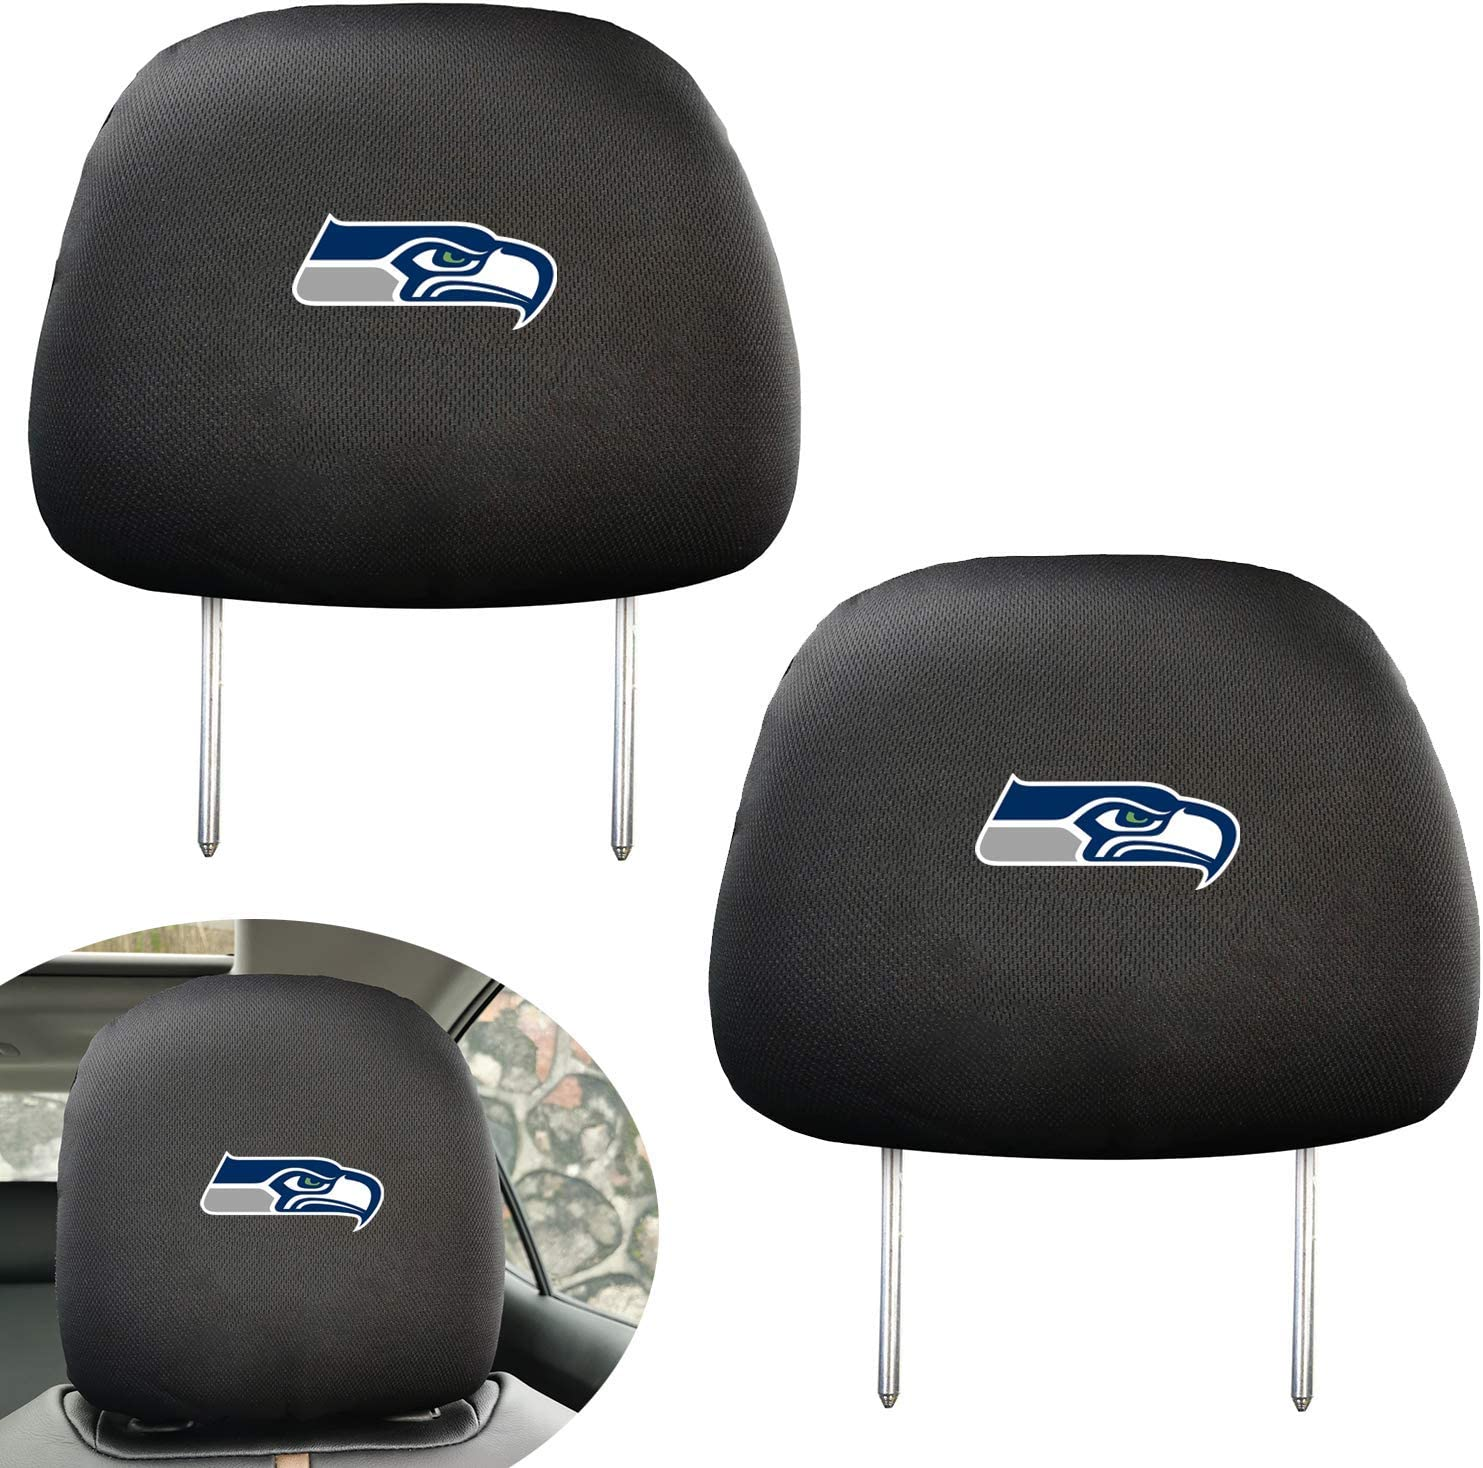 2Pcs Car Head Rest Covers for Las Vegas Raiders Luxury Black Slip Over Printed Headrest Covers Universal Car Interior Accessories Fit for Cadillac Hyundai Lexus BMW Audi Toyota Ford Chevrolet